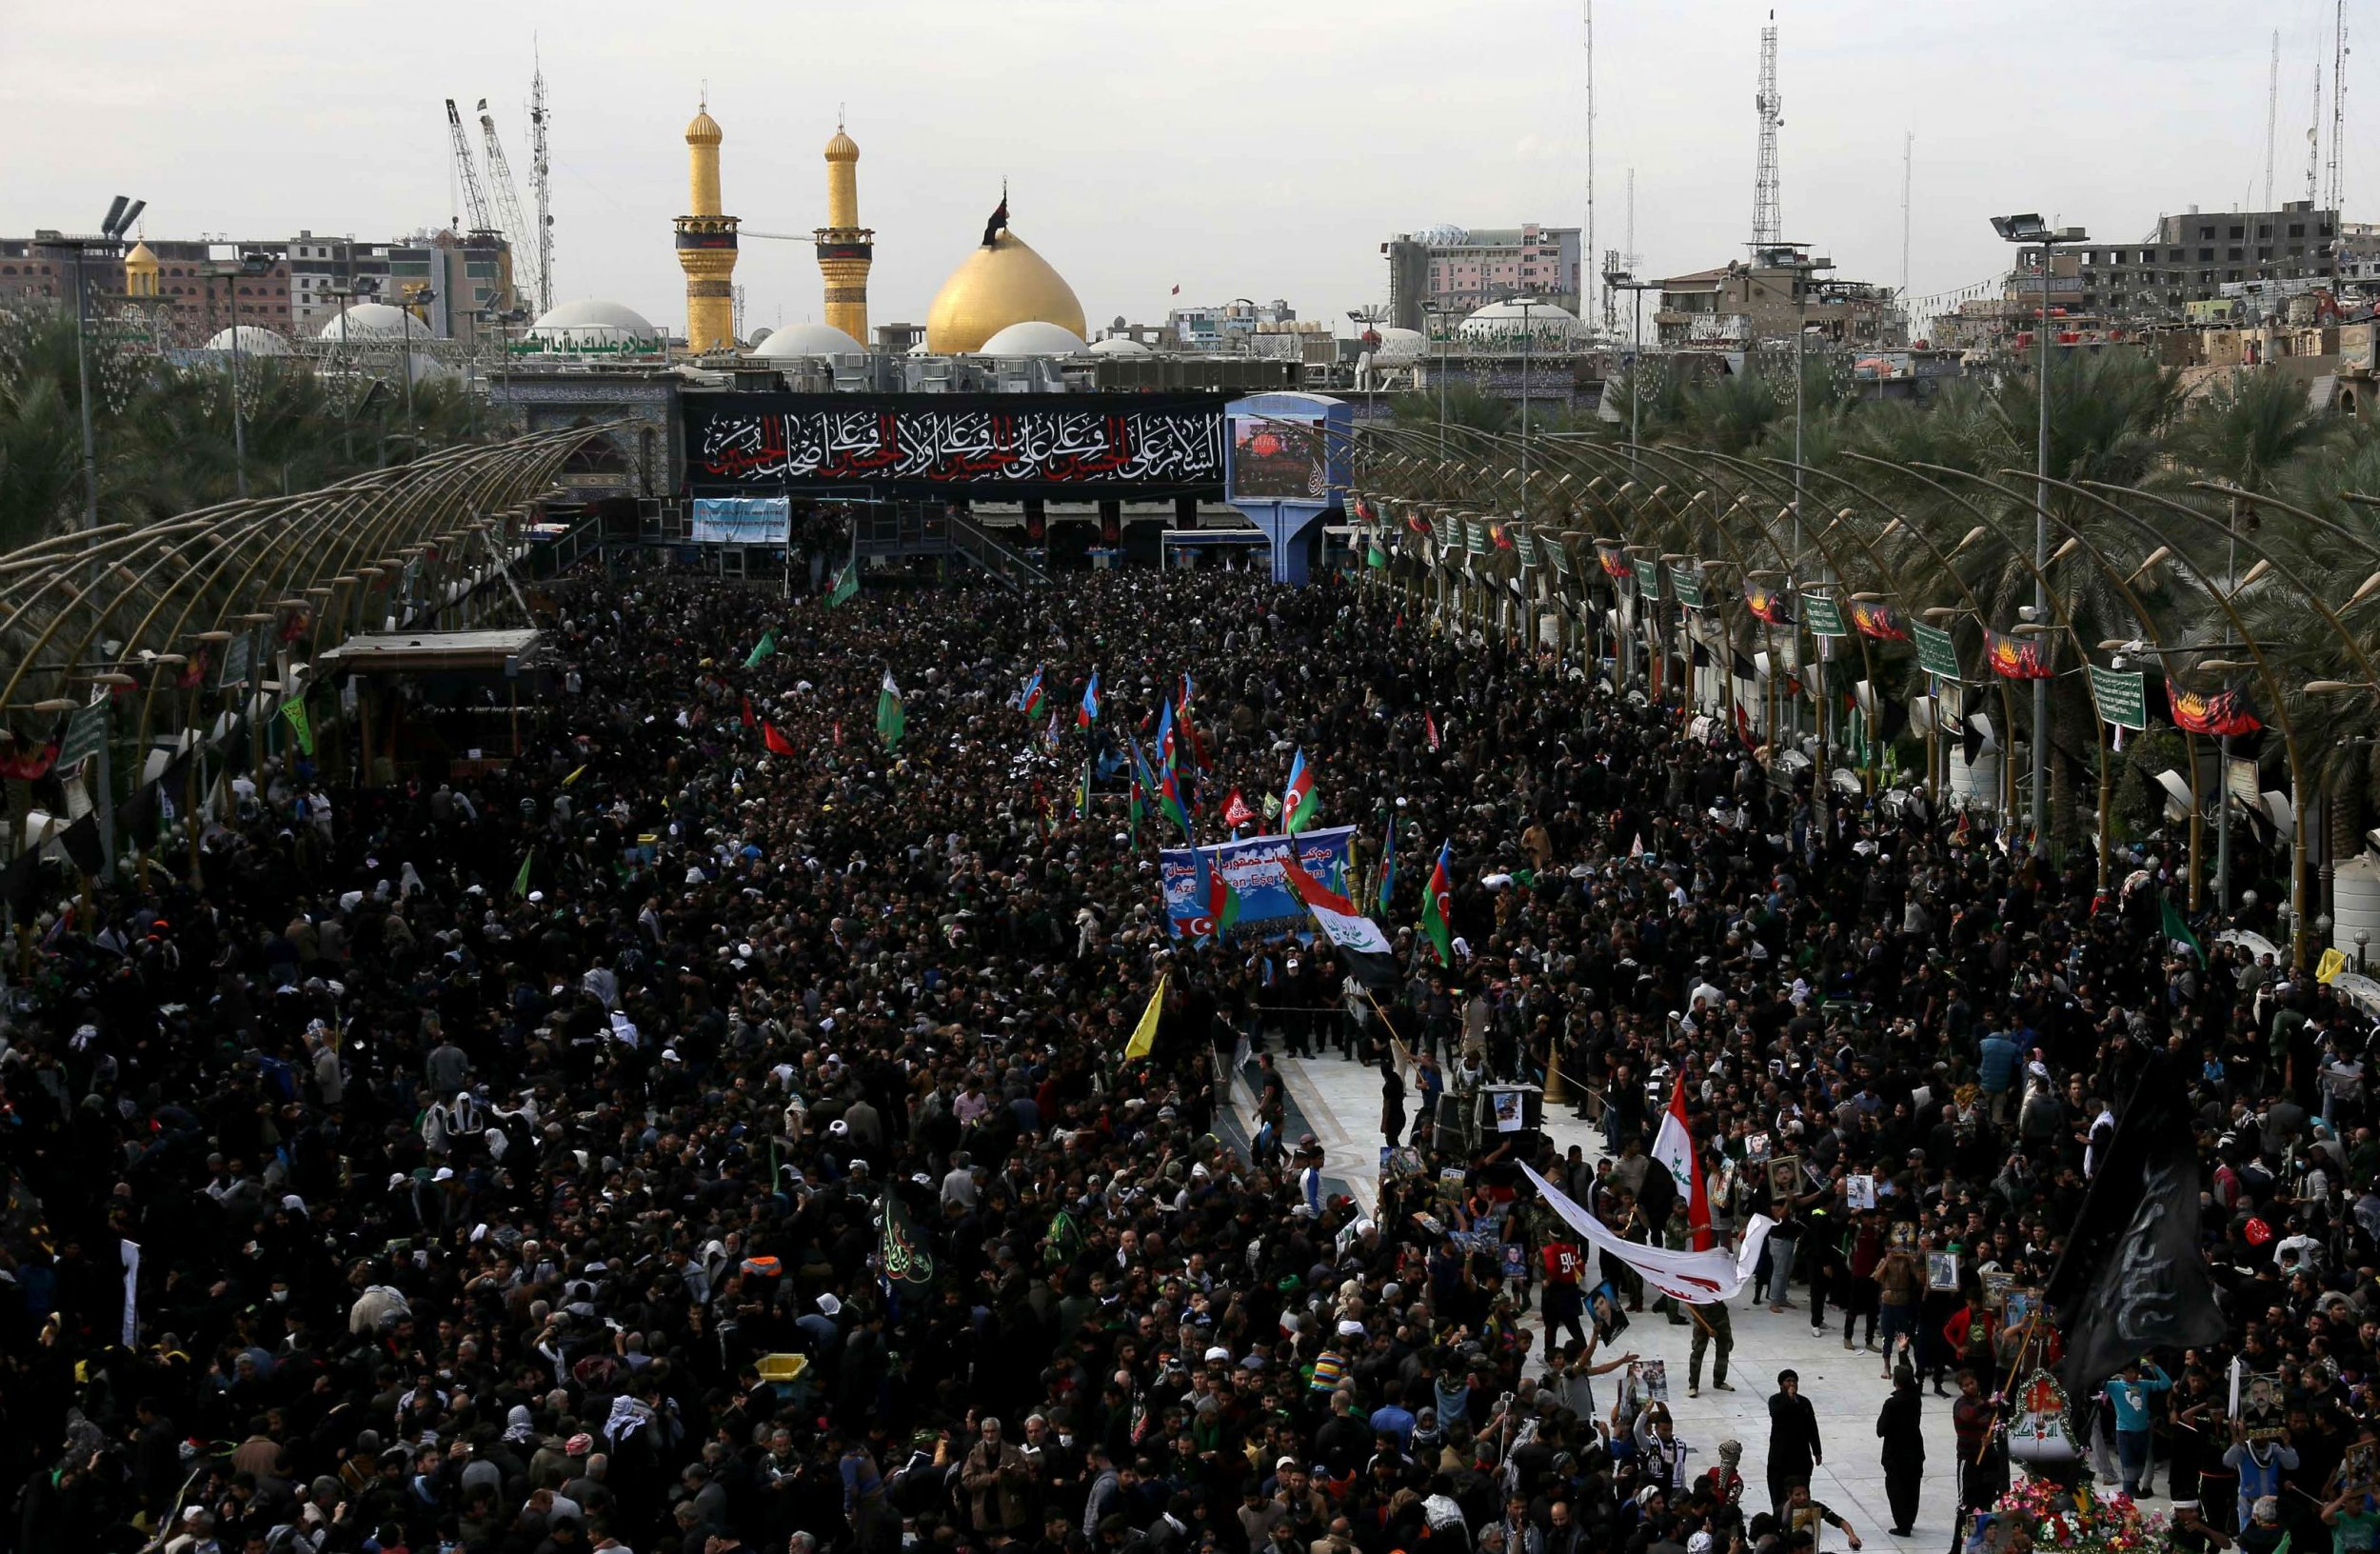 Iraqi city of Karbala